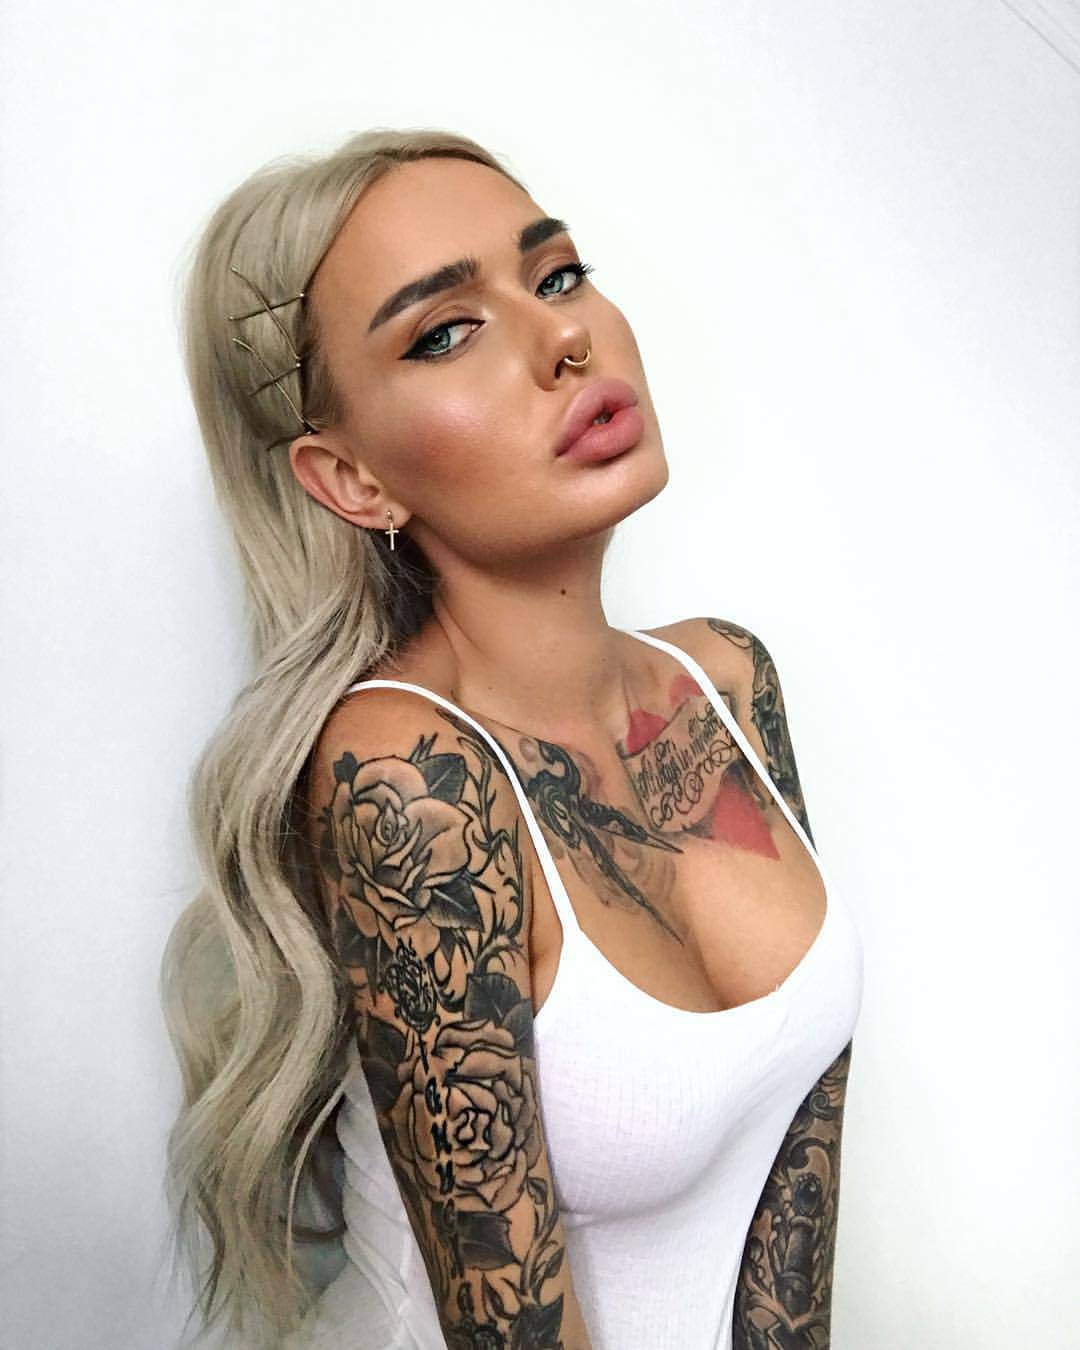 tattoo on chest and sleeves